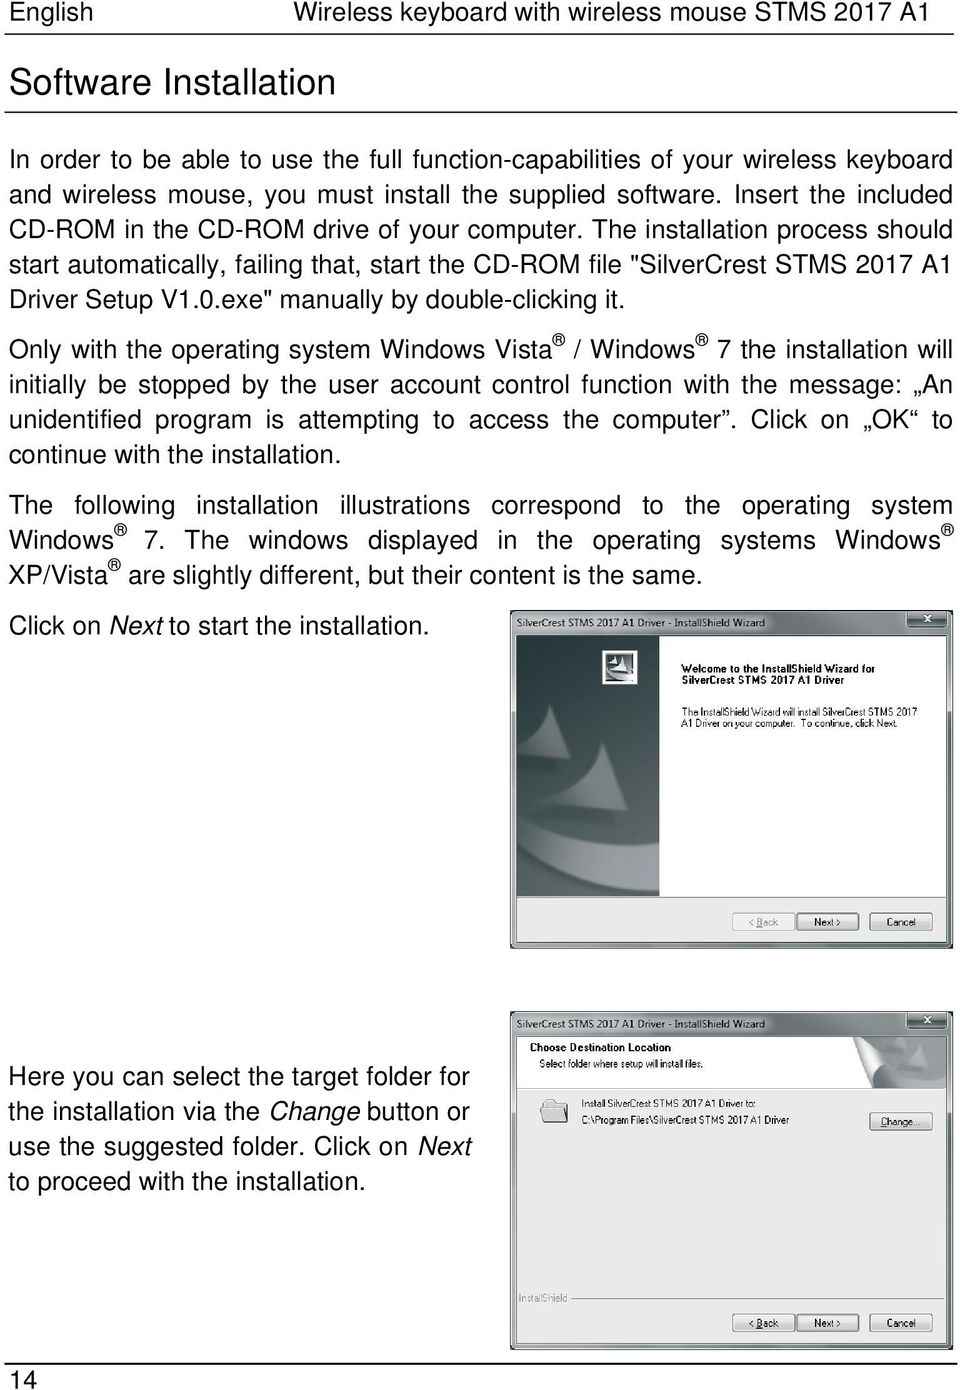 "The installation process should start automatically, failing that, start the CD-ROM file ""SilverCrest STMS 2017 A1 Driver Setup V1.0.exe"" manually by double-clicking it."